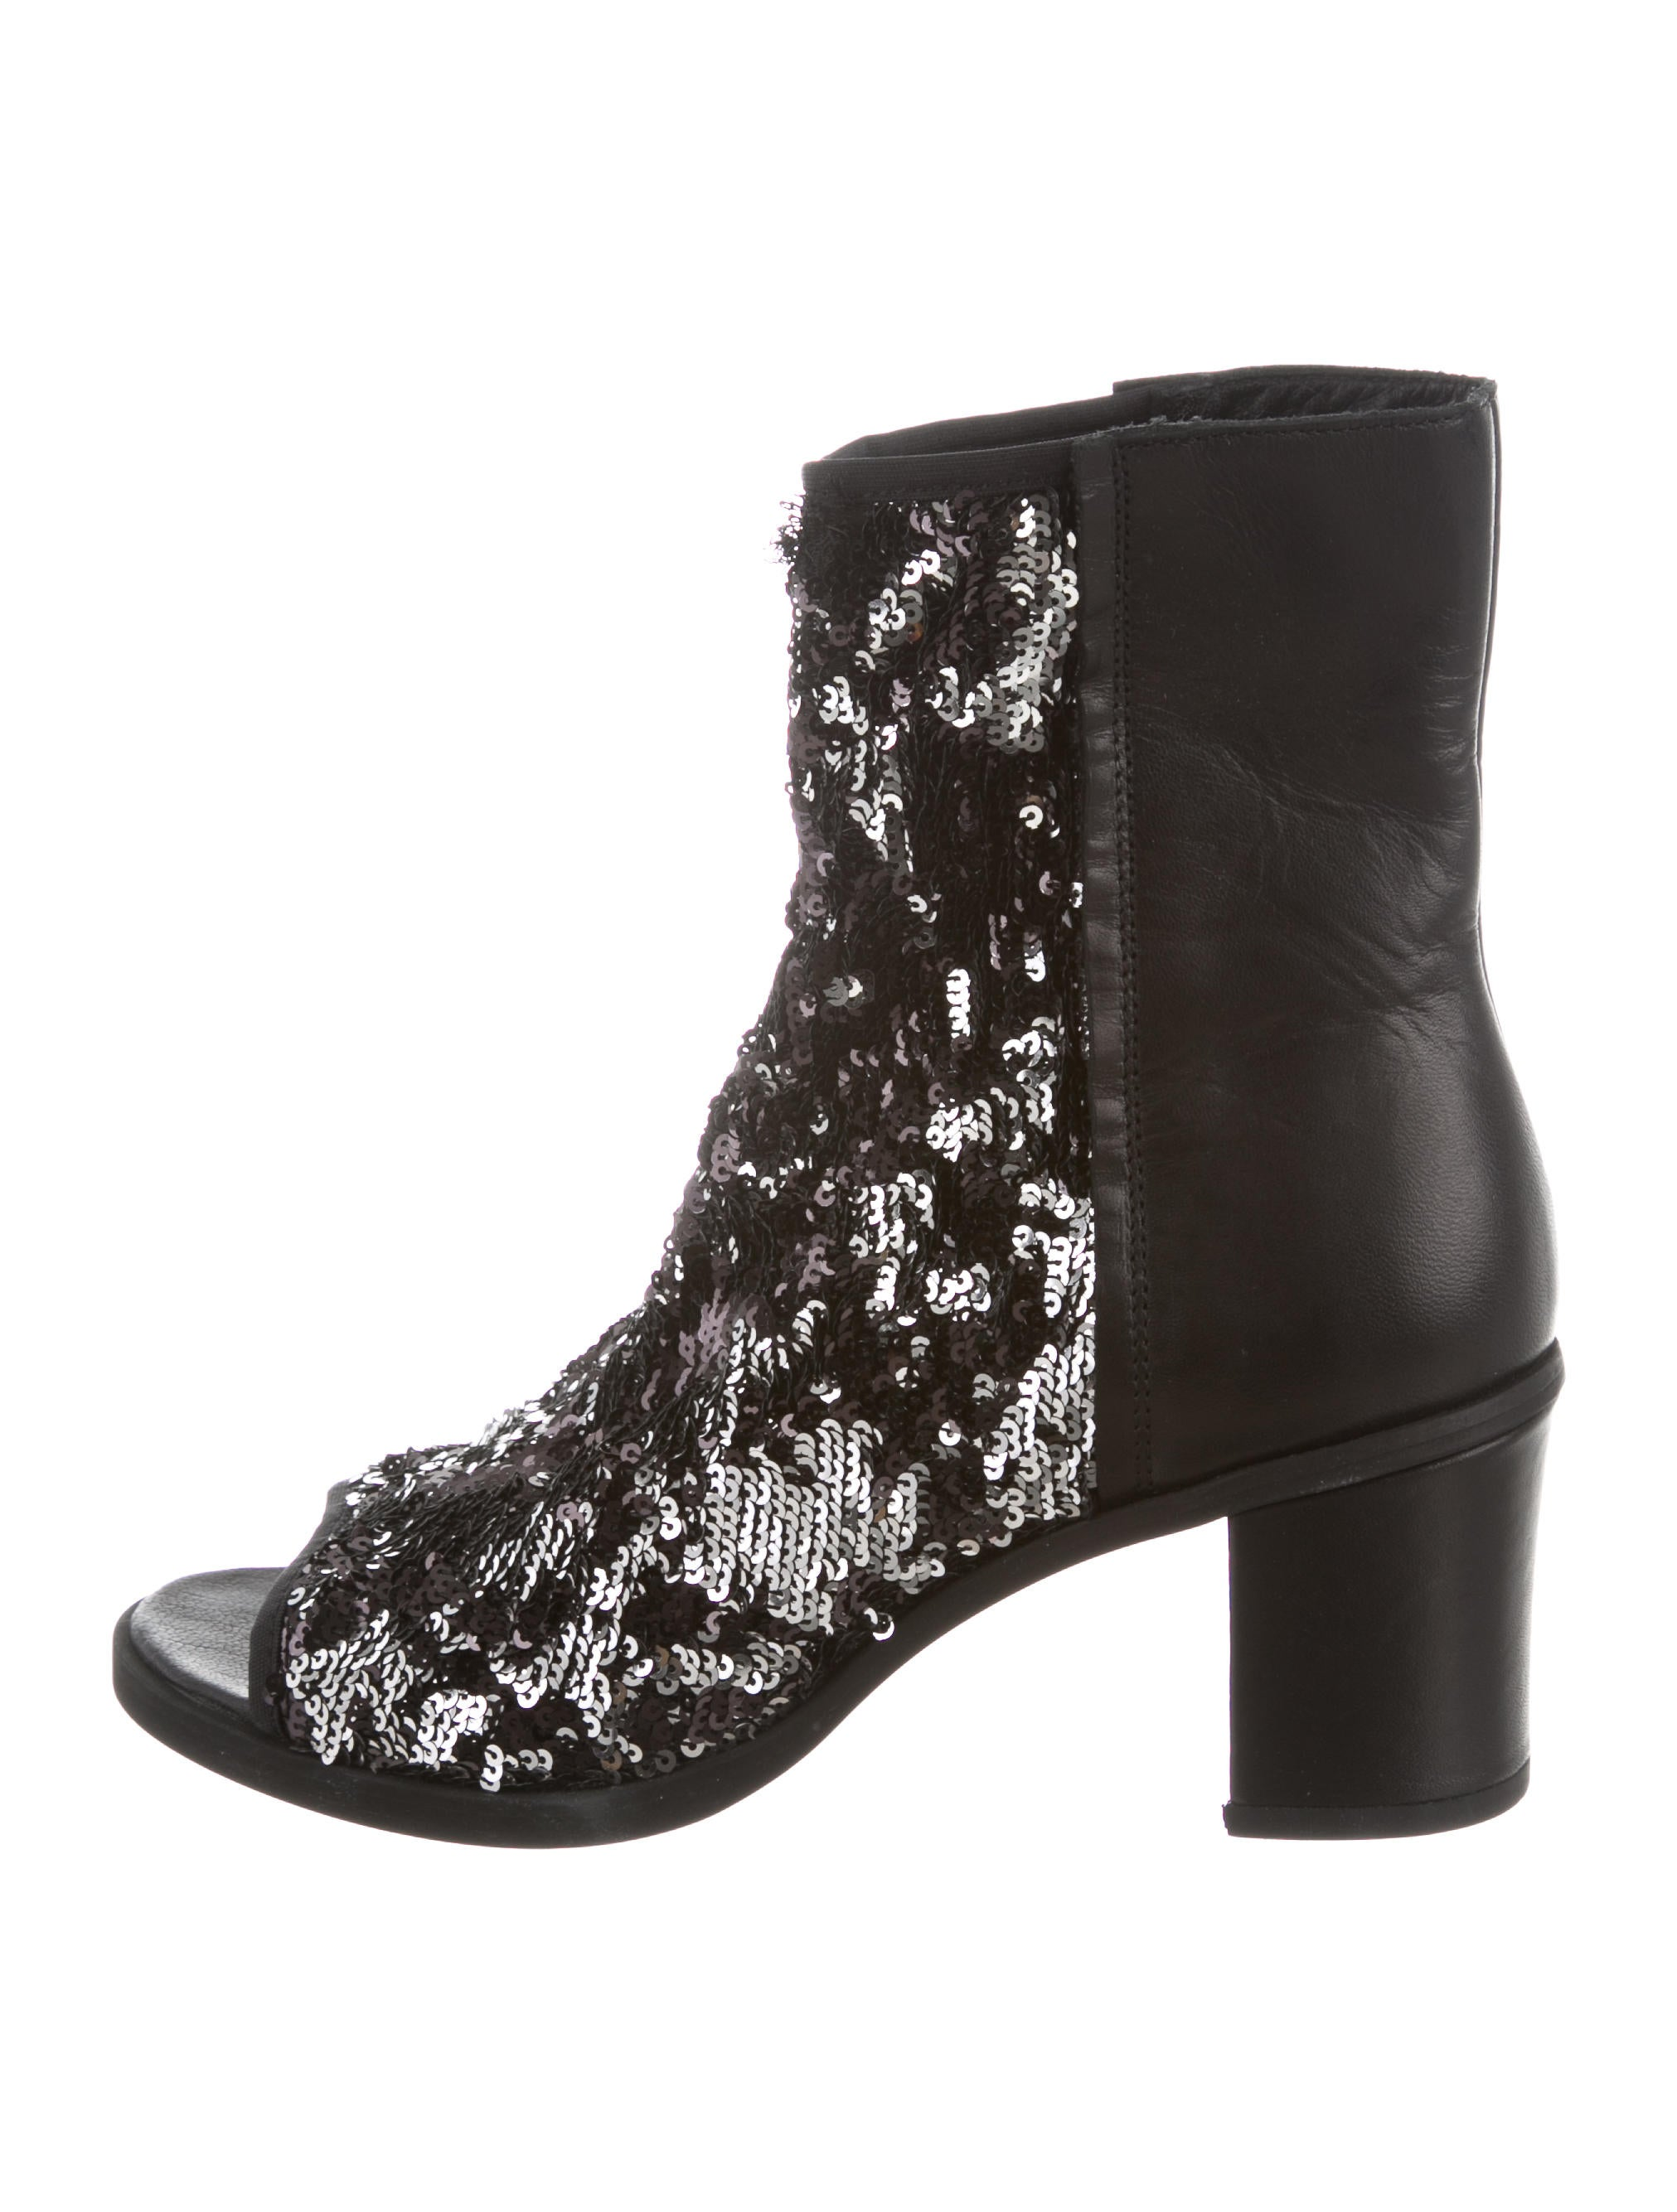 clearance get to buy MM6 Maison Margiela MM6 Maison Martin Margiela Sequined Peep-Toe Ankle Boots w/ Tags discount official P73OD